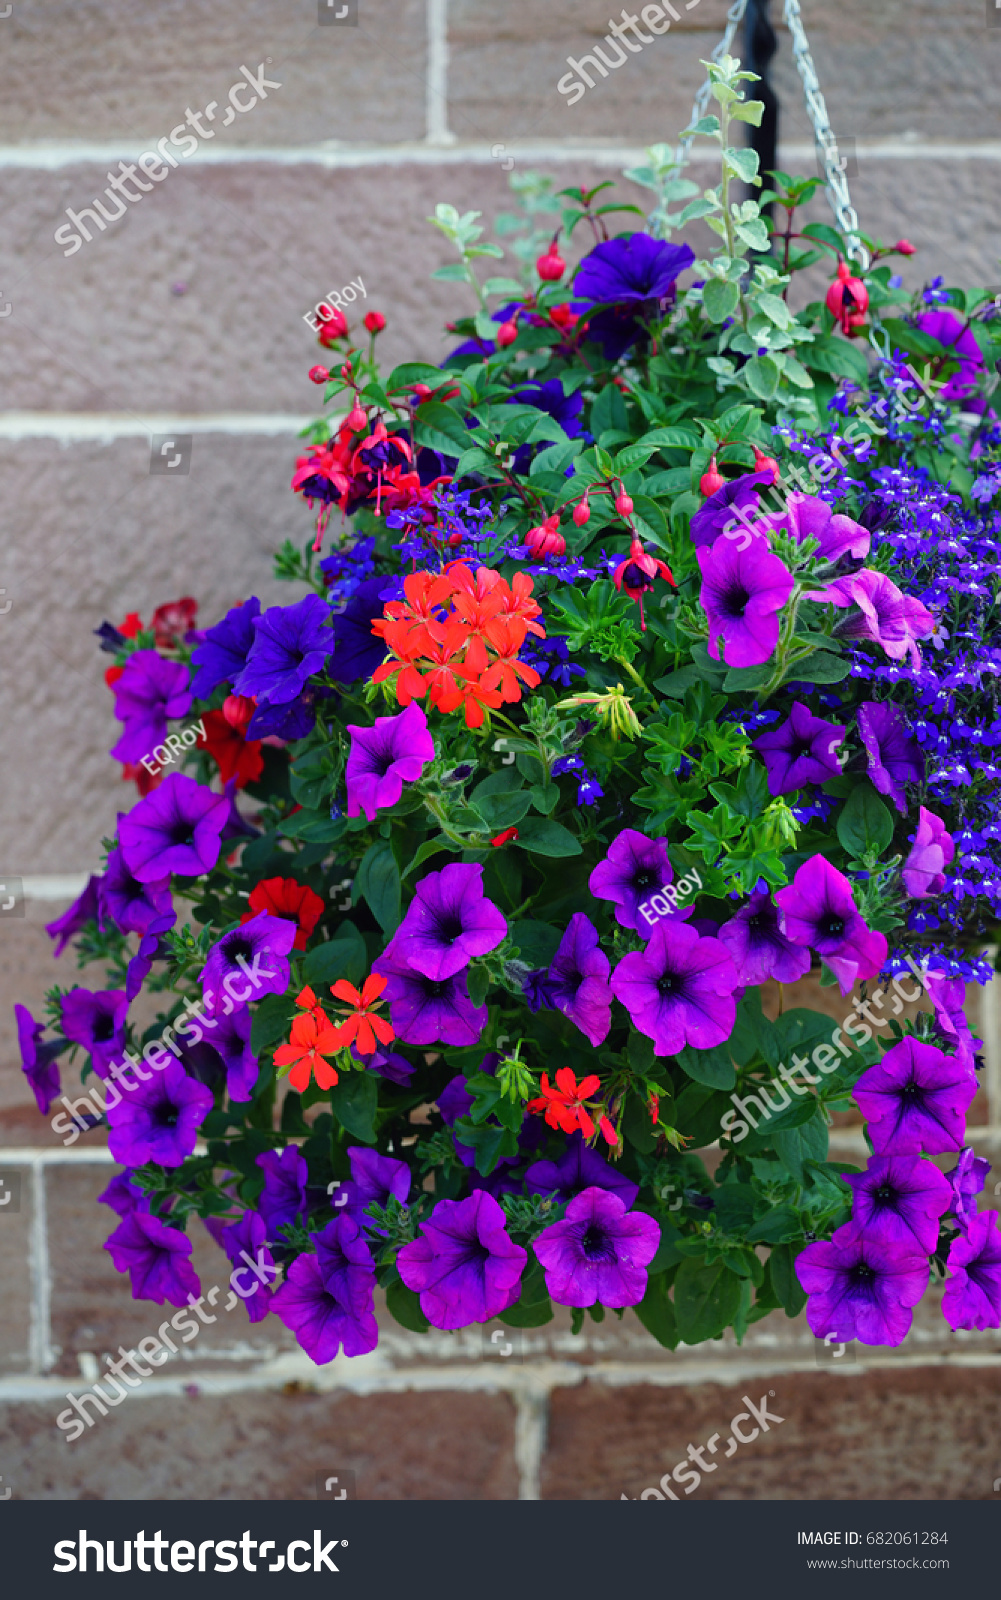 Hanging Flower Planter Colorful Blue Red Stock Photo Download Now